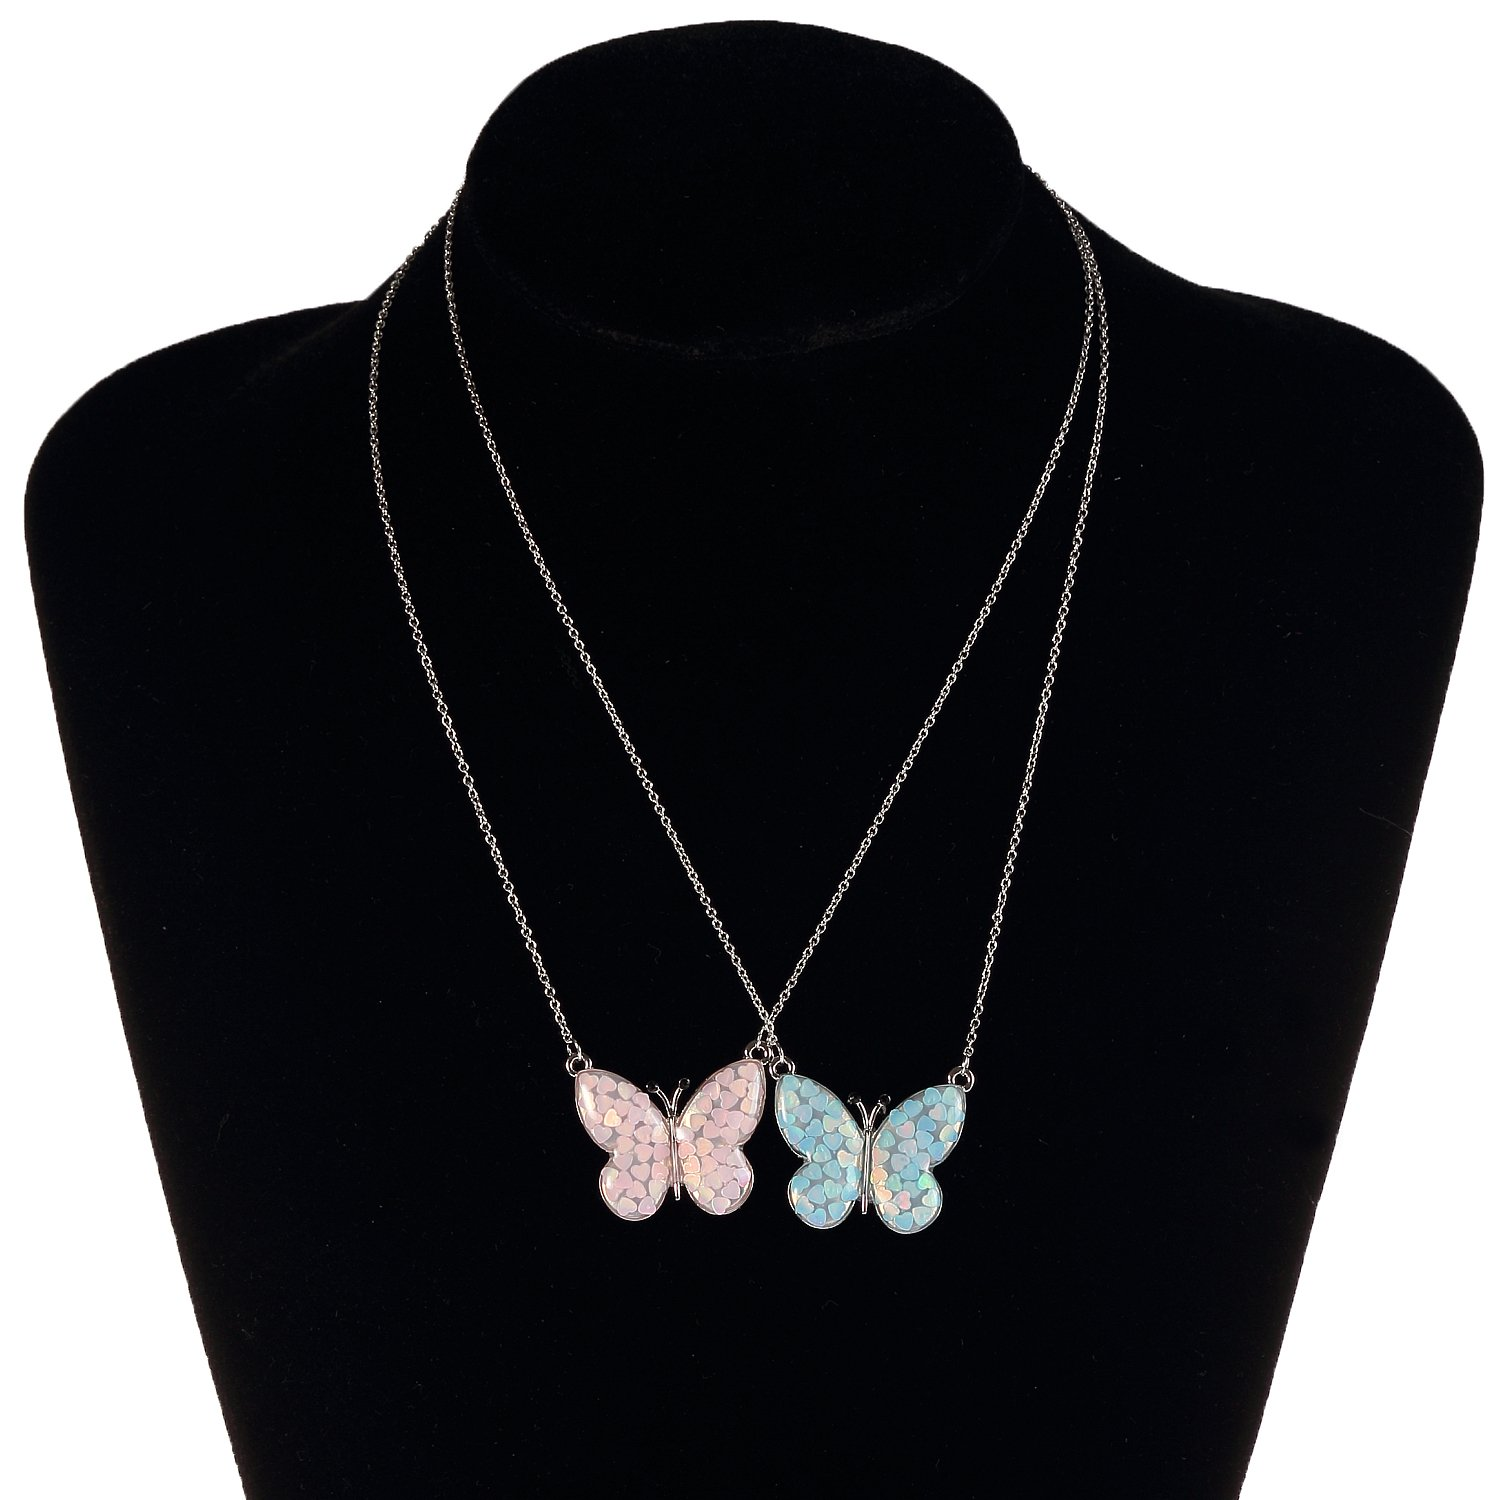 Lemonage Butterfly Necklaces for Girls Kids with Stunning Alloy Pendant Necklace, Children 3+ (Pink) by Lemonage (Image #3)